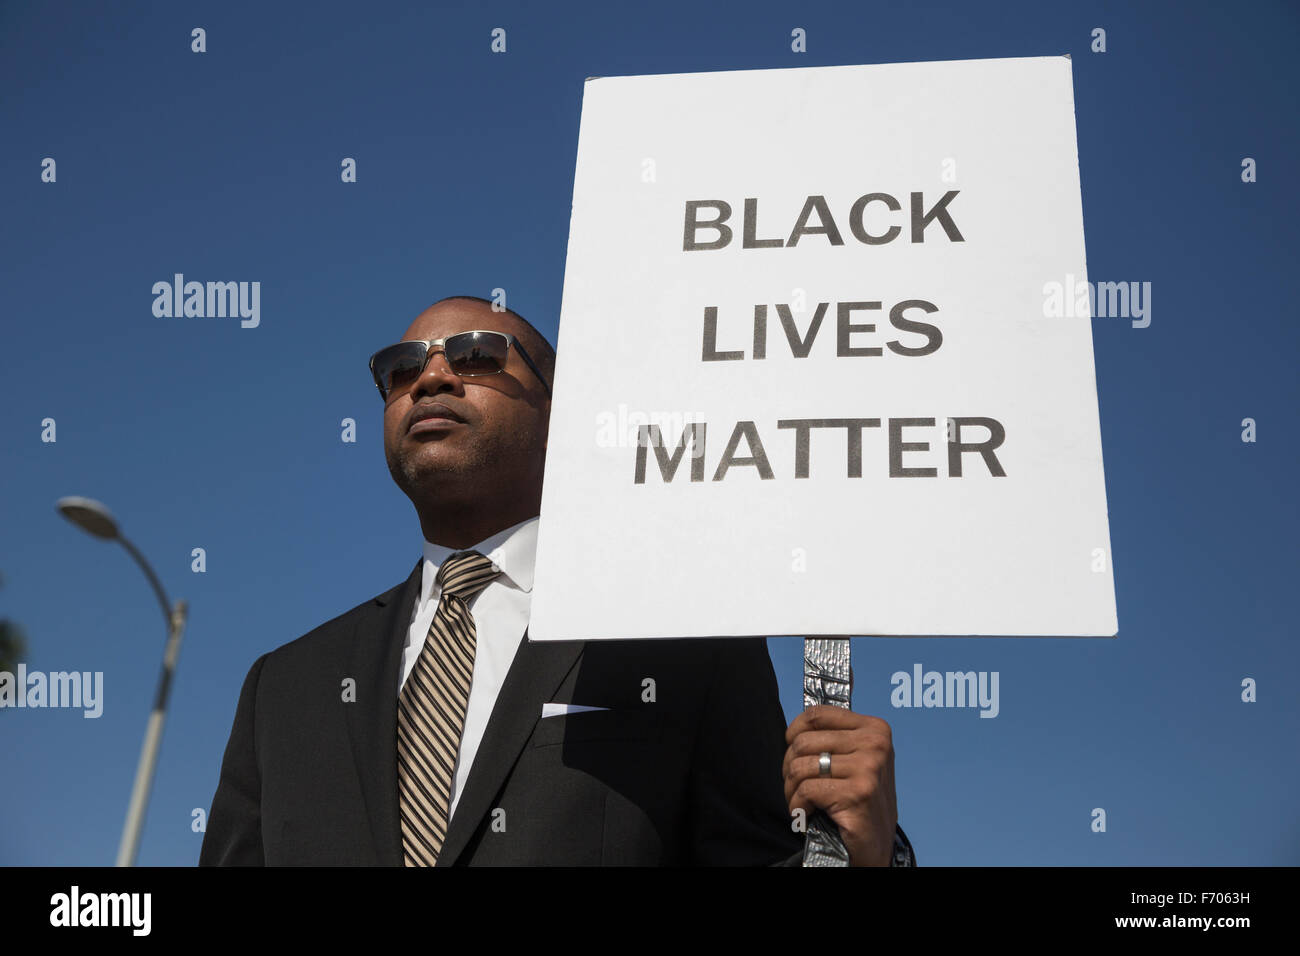 Los Angeles, California, USA, January 19, 2015, 30th annual Martin Luther King Jr. Kingdom Day Parade, black man - Stock Image